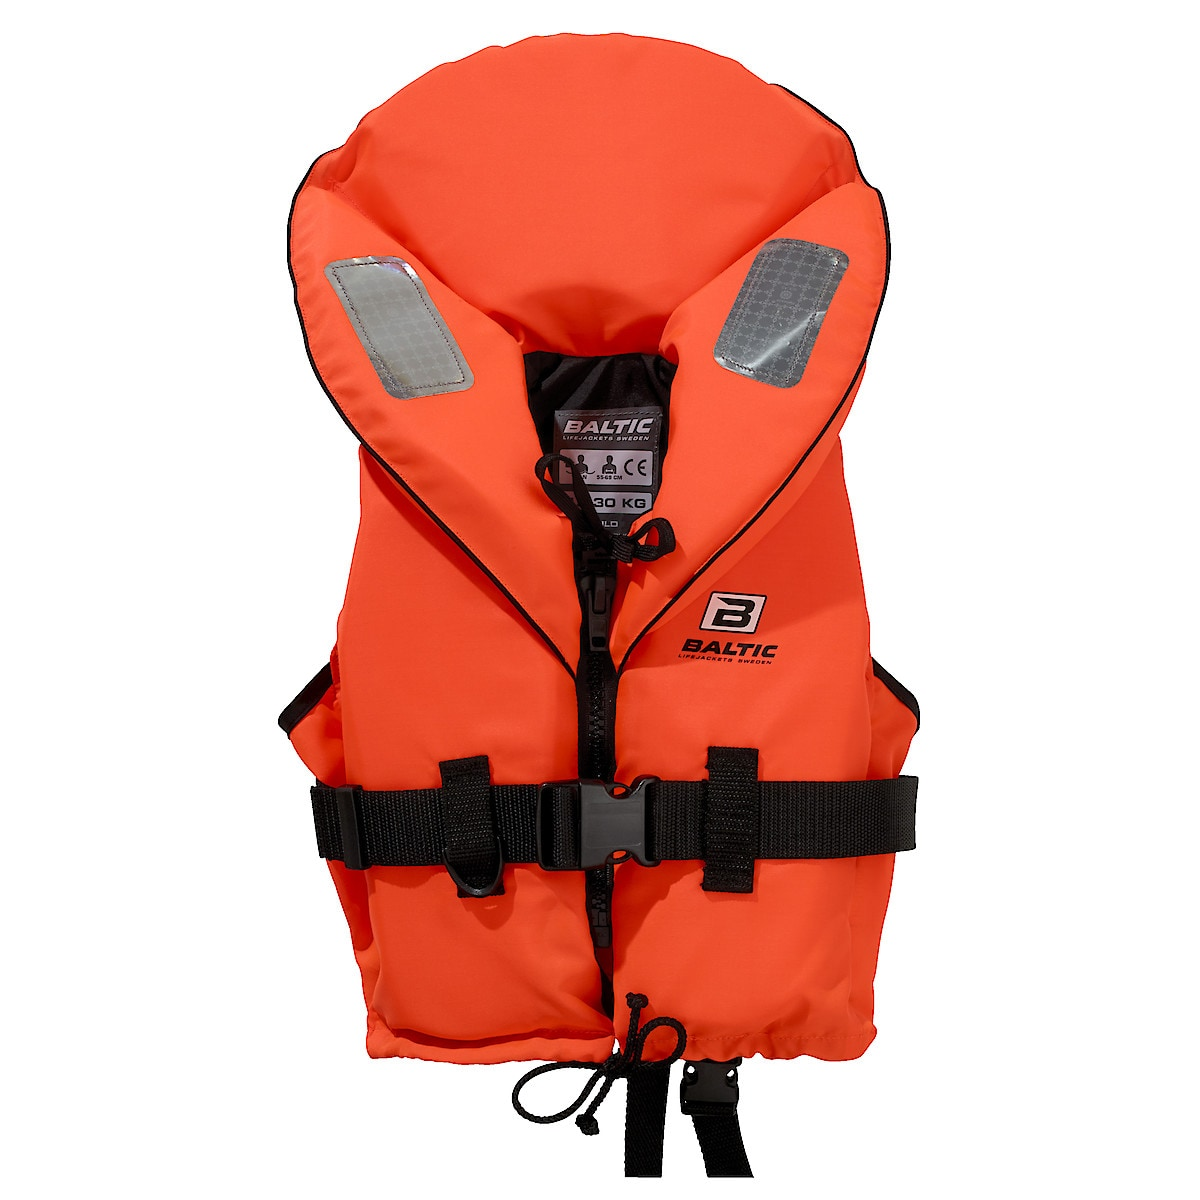 Baltic Skipper 1280 Life Jacket, 15–30 kg